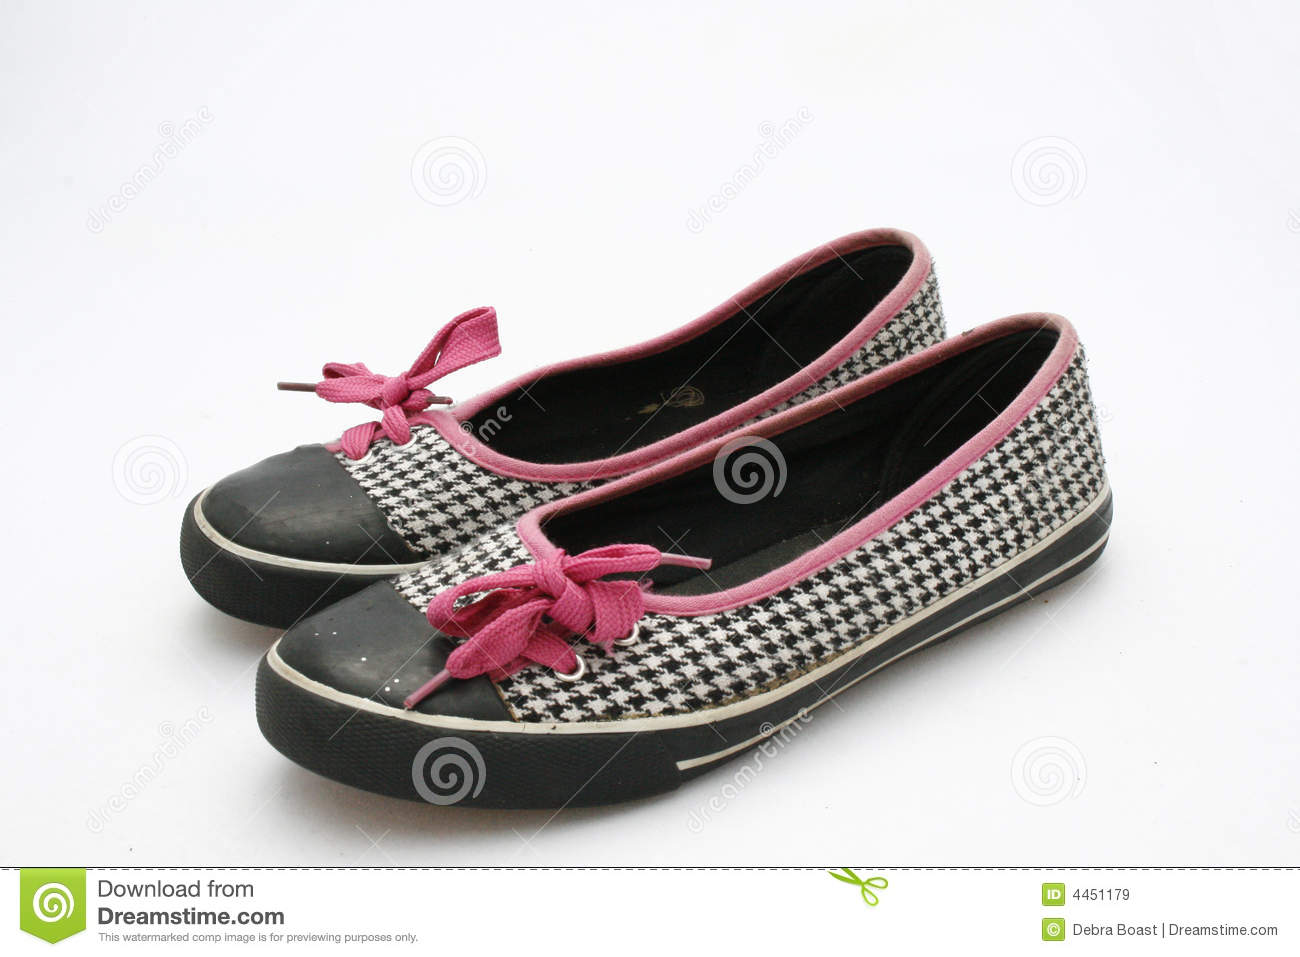 pair of black and white checkered shoes with pink shoelaces